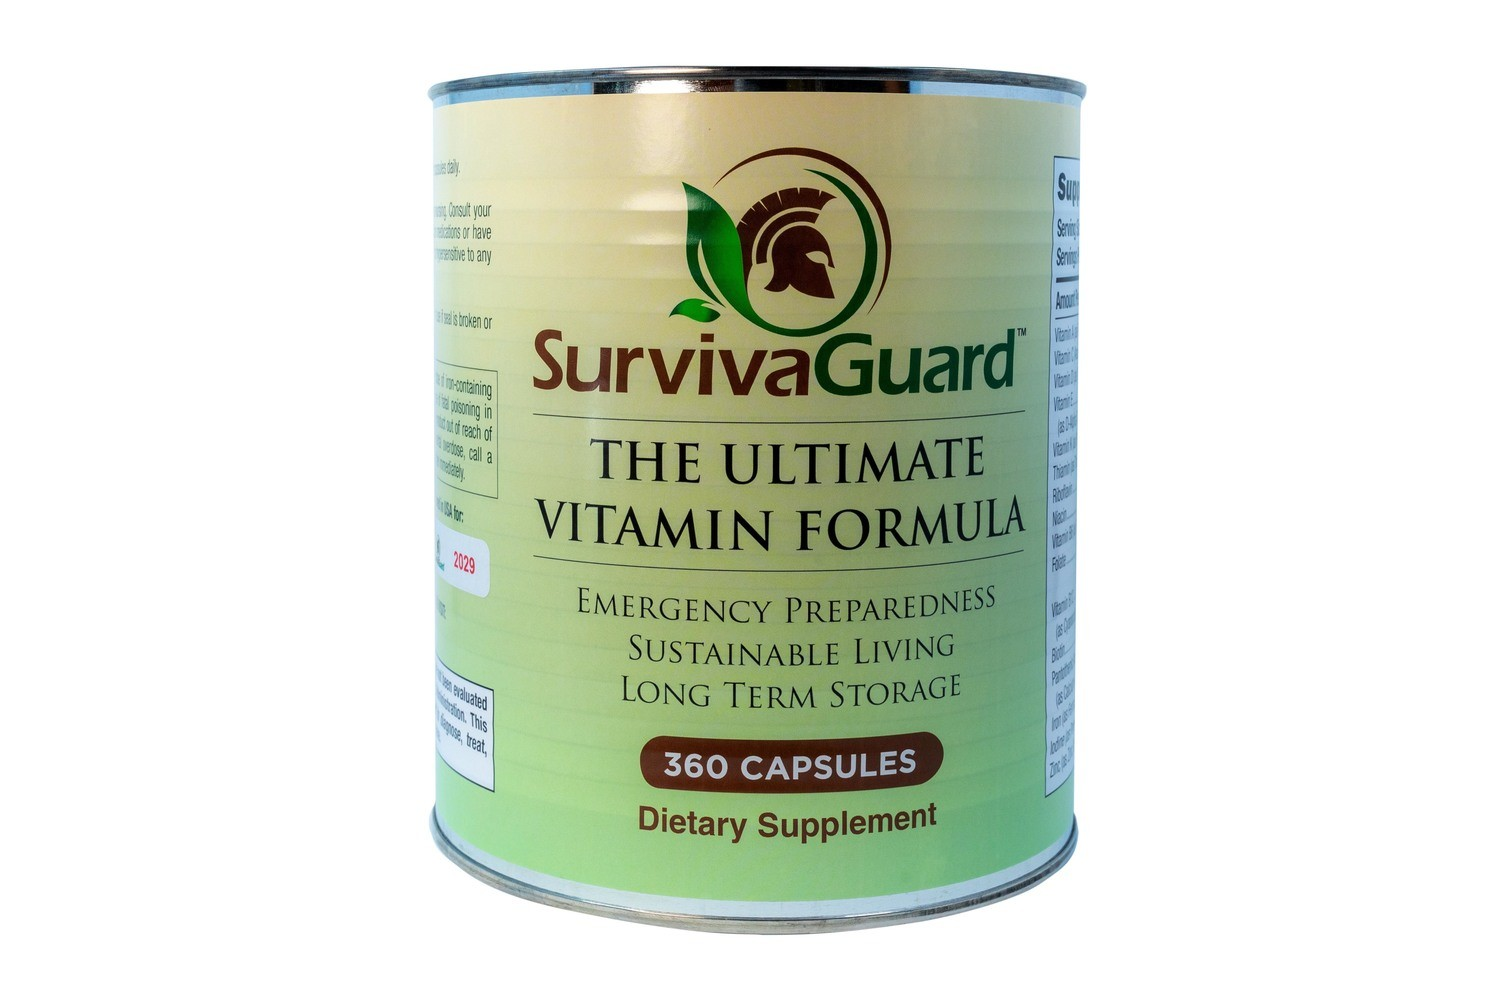 360 Capsule SurvivaGuard #10 Can 6 Month Supply for Long Term Storage